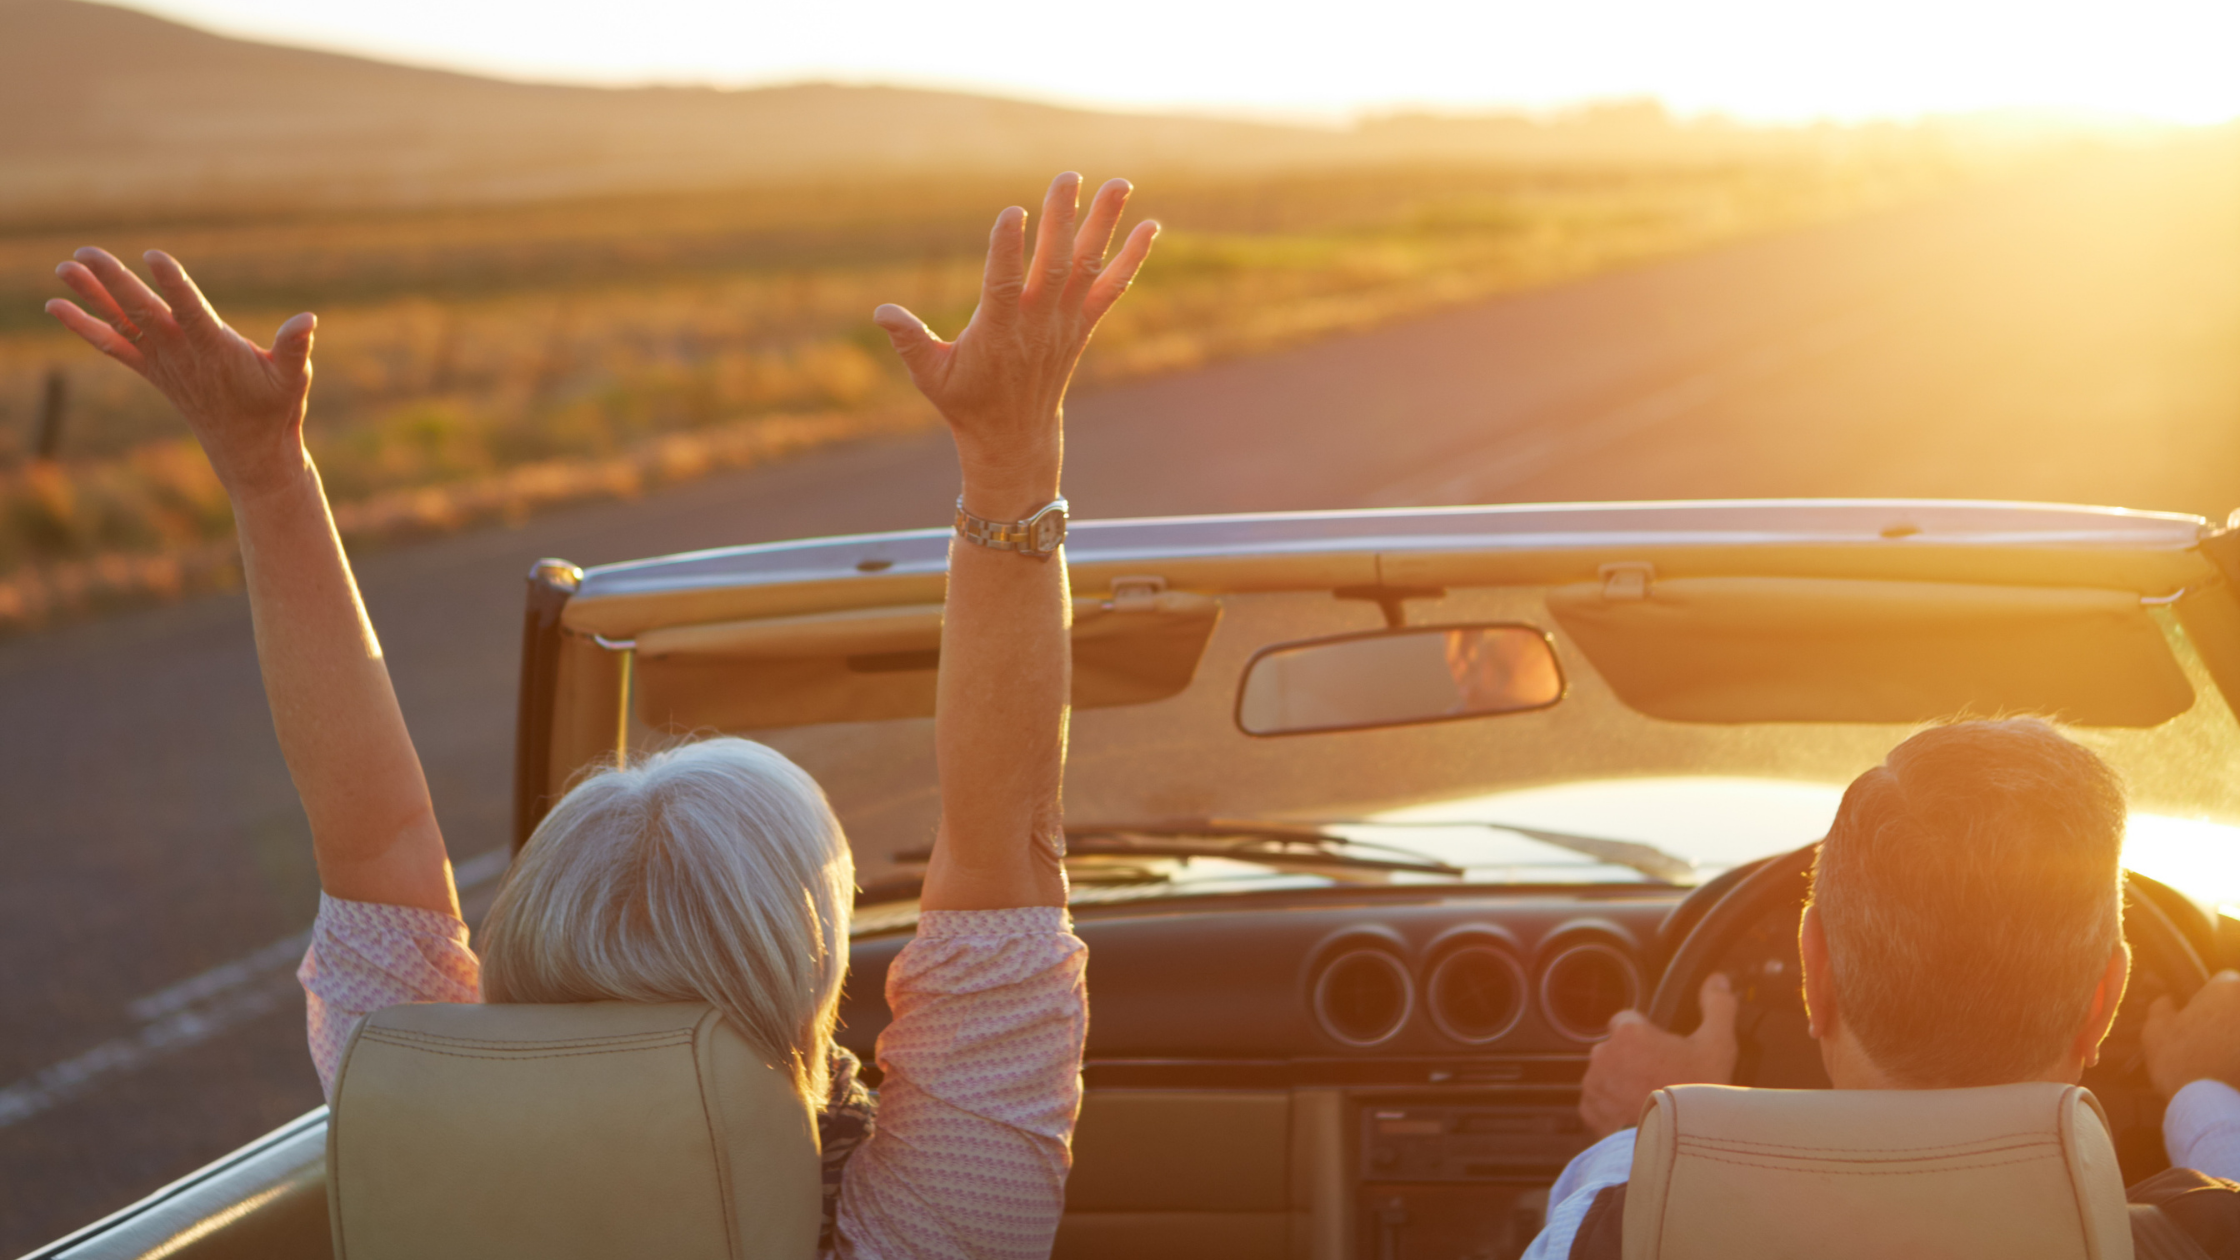 woman and man in a car enjoying the ride along a wide, open road into the sun